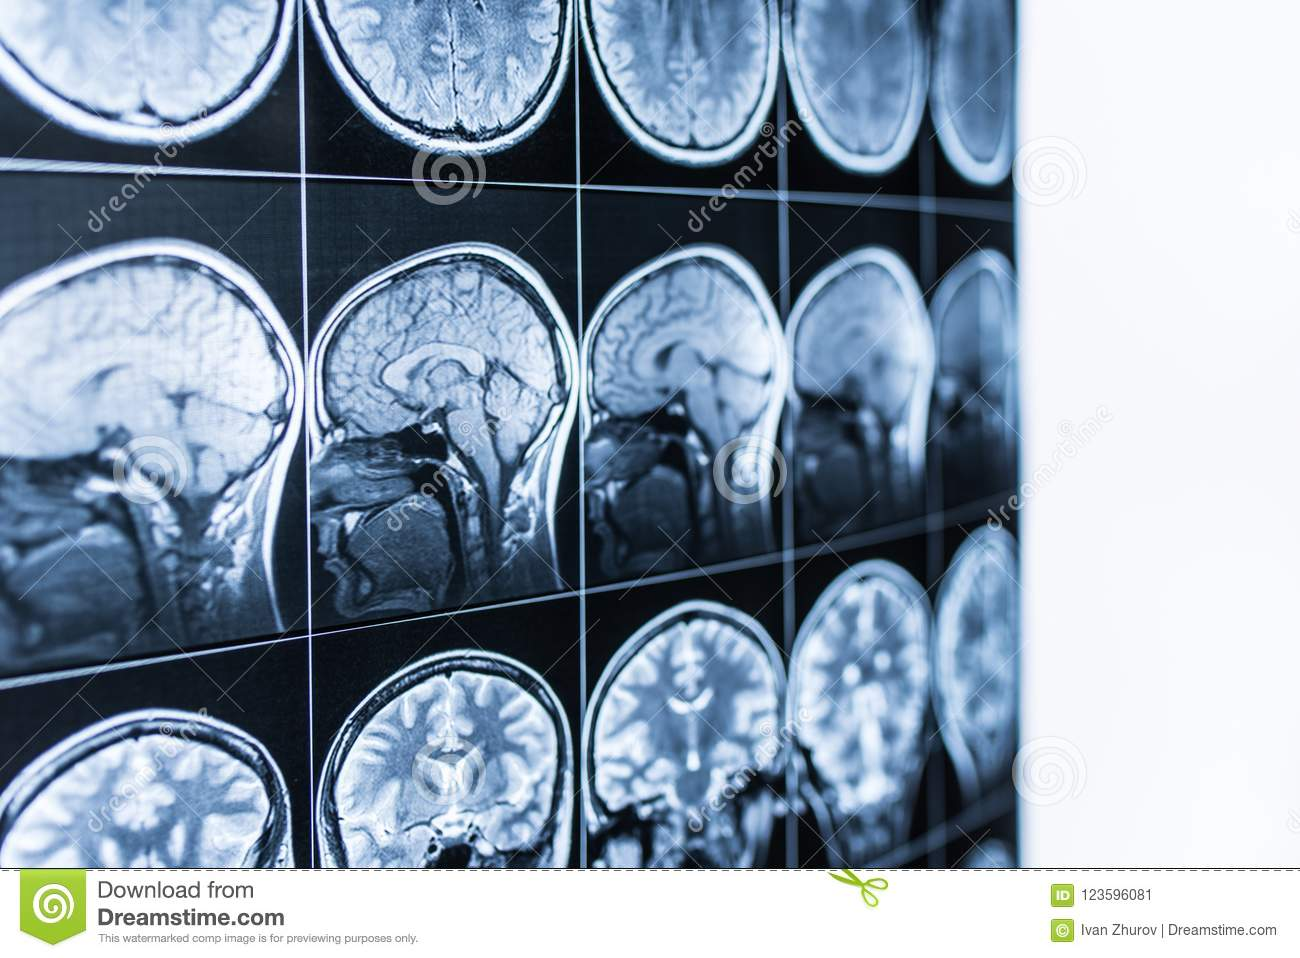 MRI scan of the head and brain of a person in the defocus